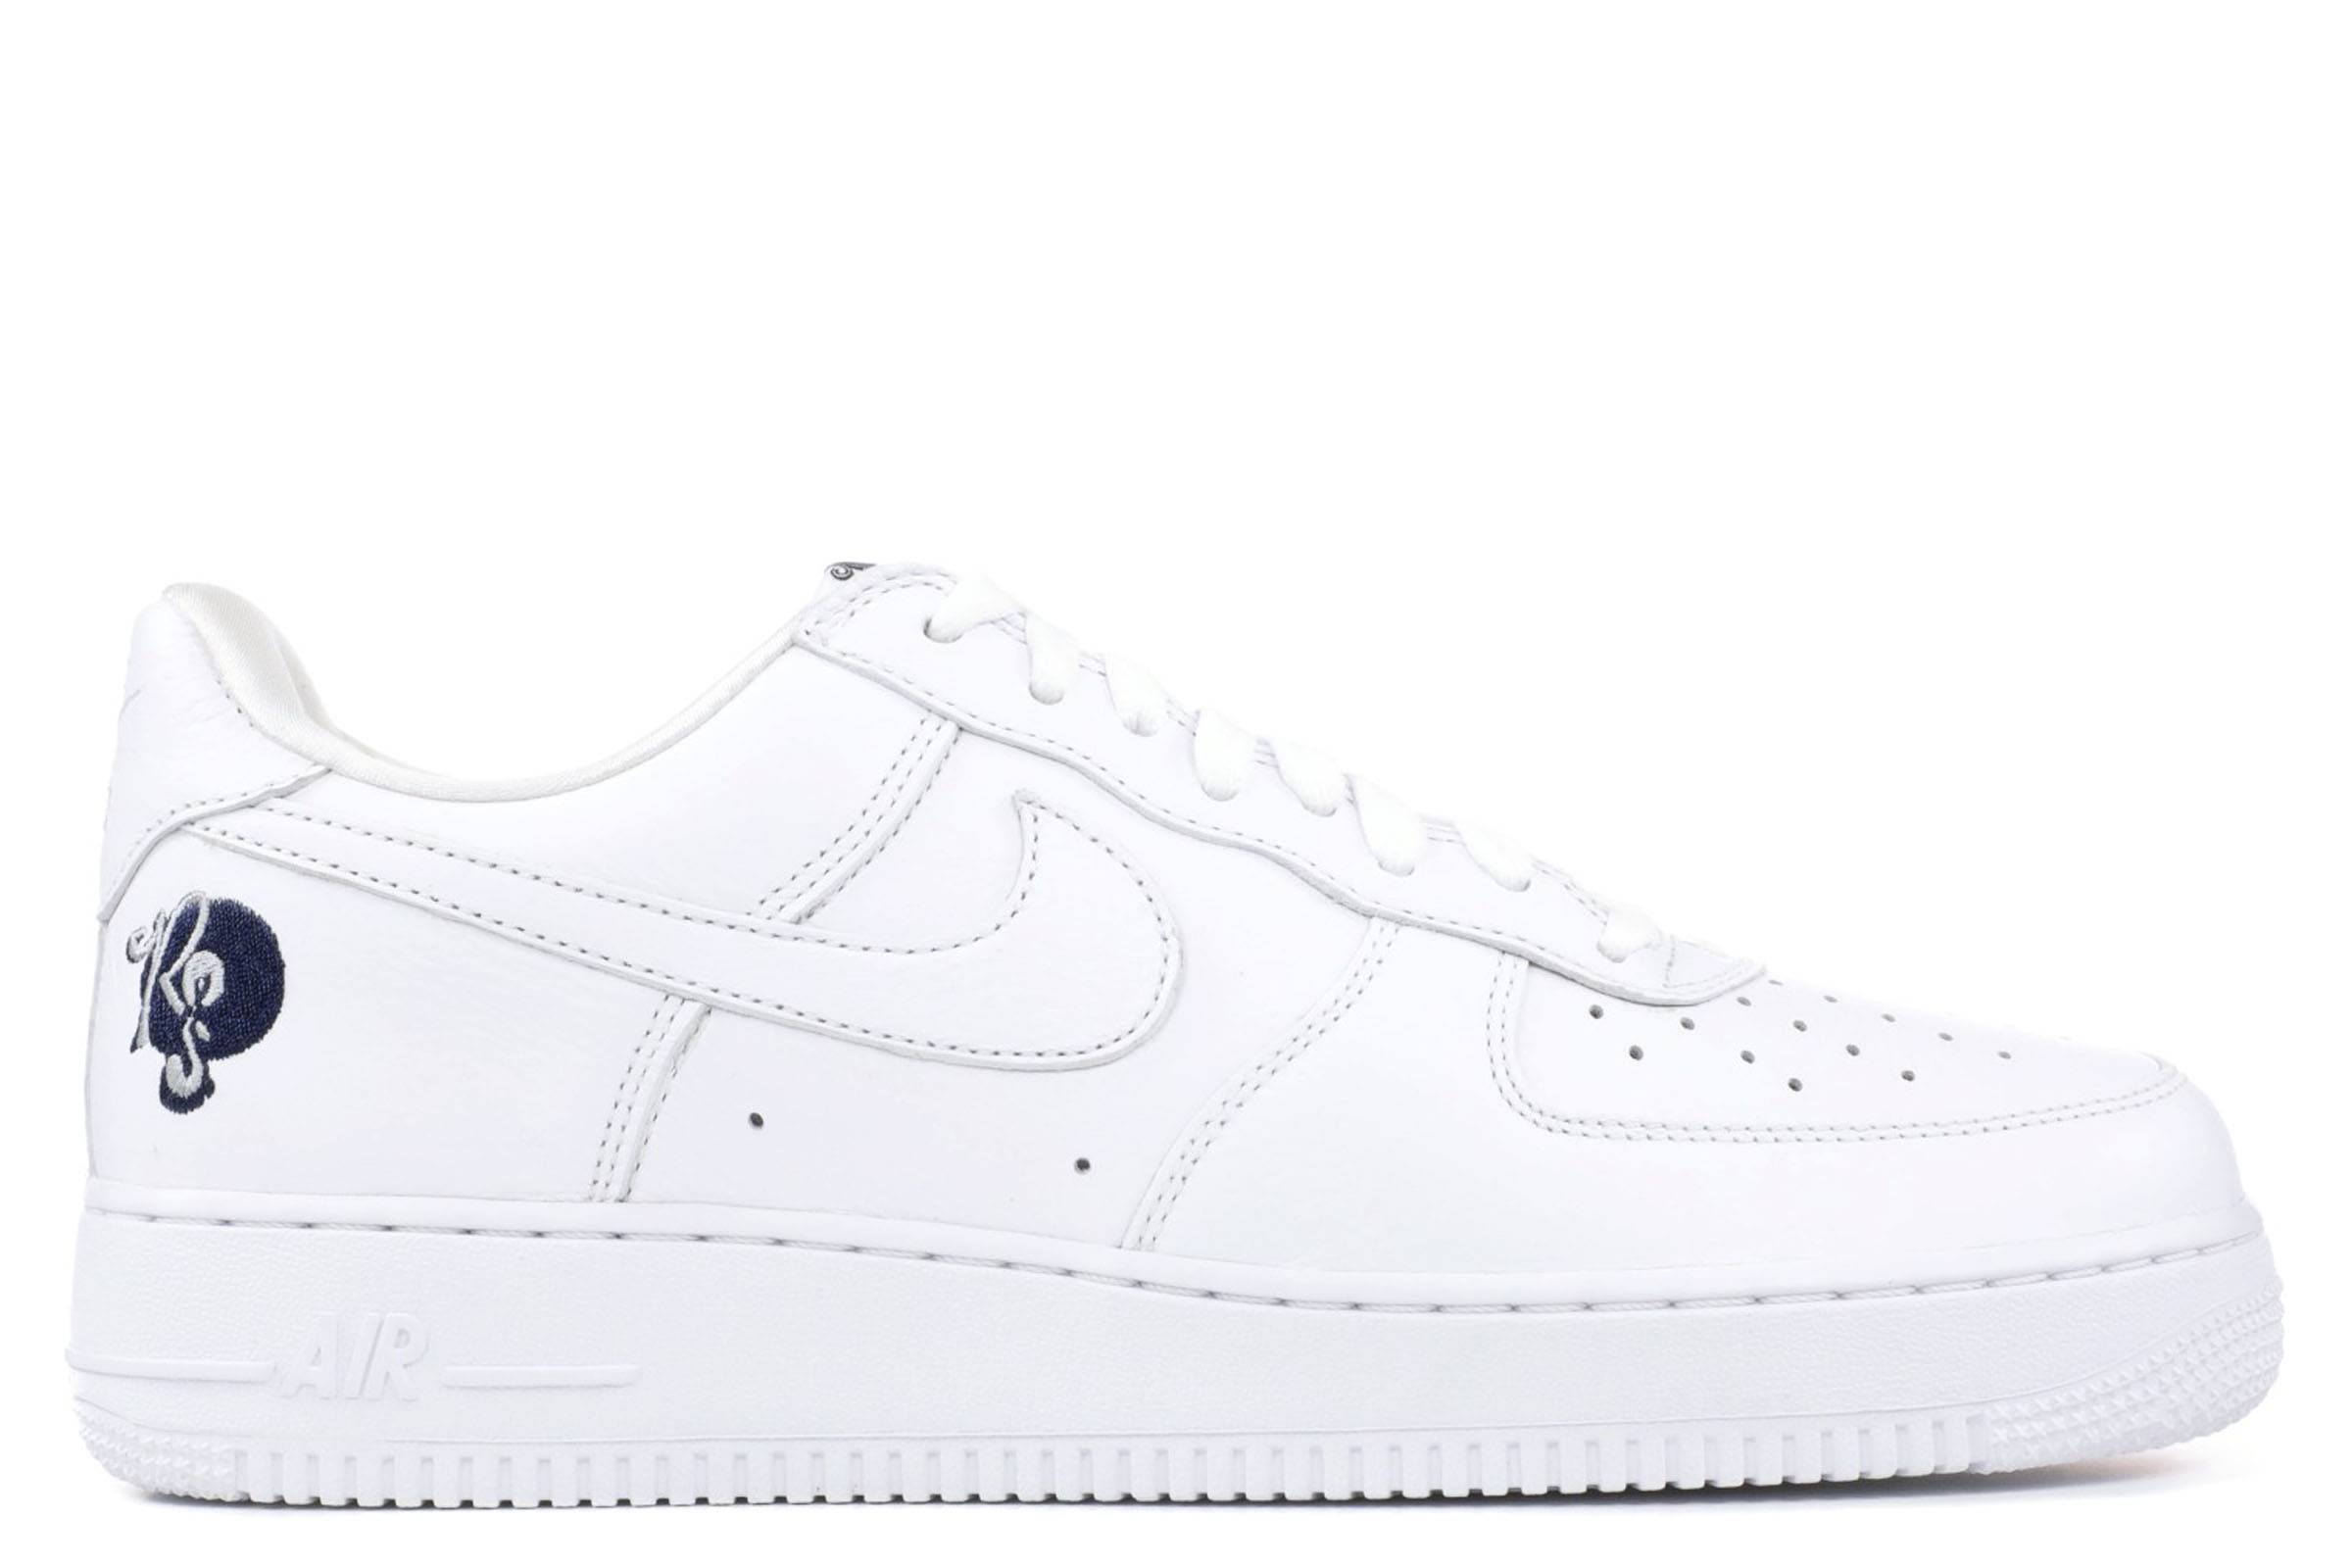 half off d652e 7b6d5 There had to be an all-white Air Force 1 on this list, and the Roc-A-Fella  joint was pretty much a no-brainer. The clean, crisp white leather makeup  make ...